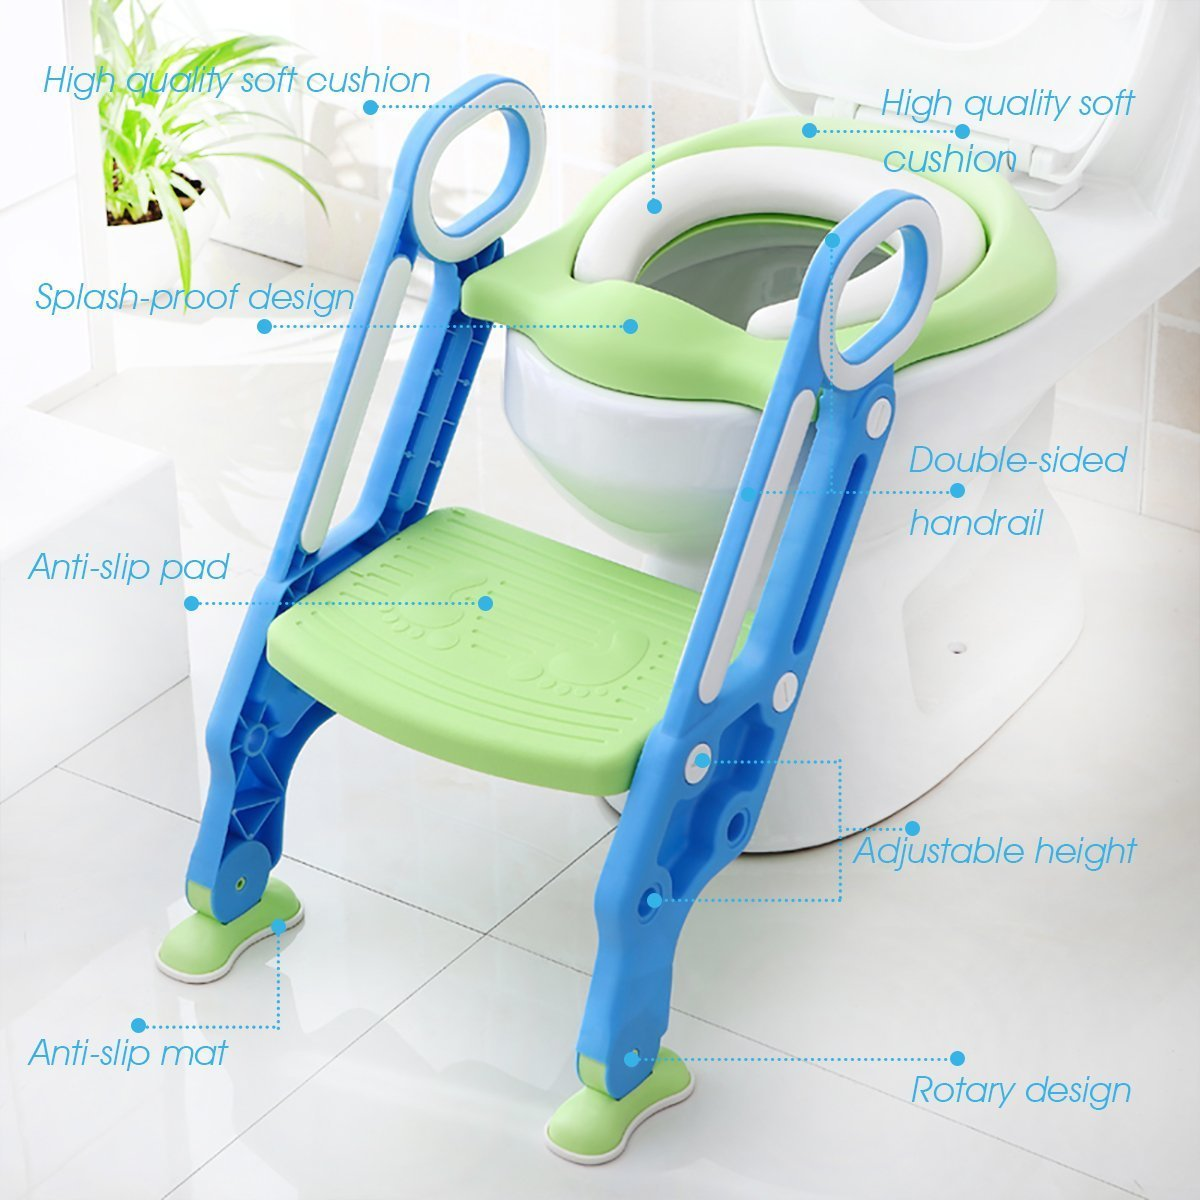 Mangohood Potty Training Toilet Seat with Step Stool Ladder for Boy and Girl Baby Toddler Kid Children's Toilet Training Seat Chair with Soft Padded Seat and Sturdy Non-Slip Wide Step (Blue Green) by Mangohood (Image #8)